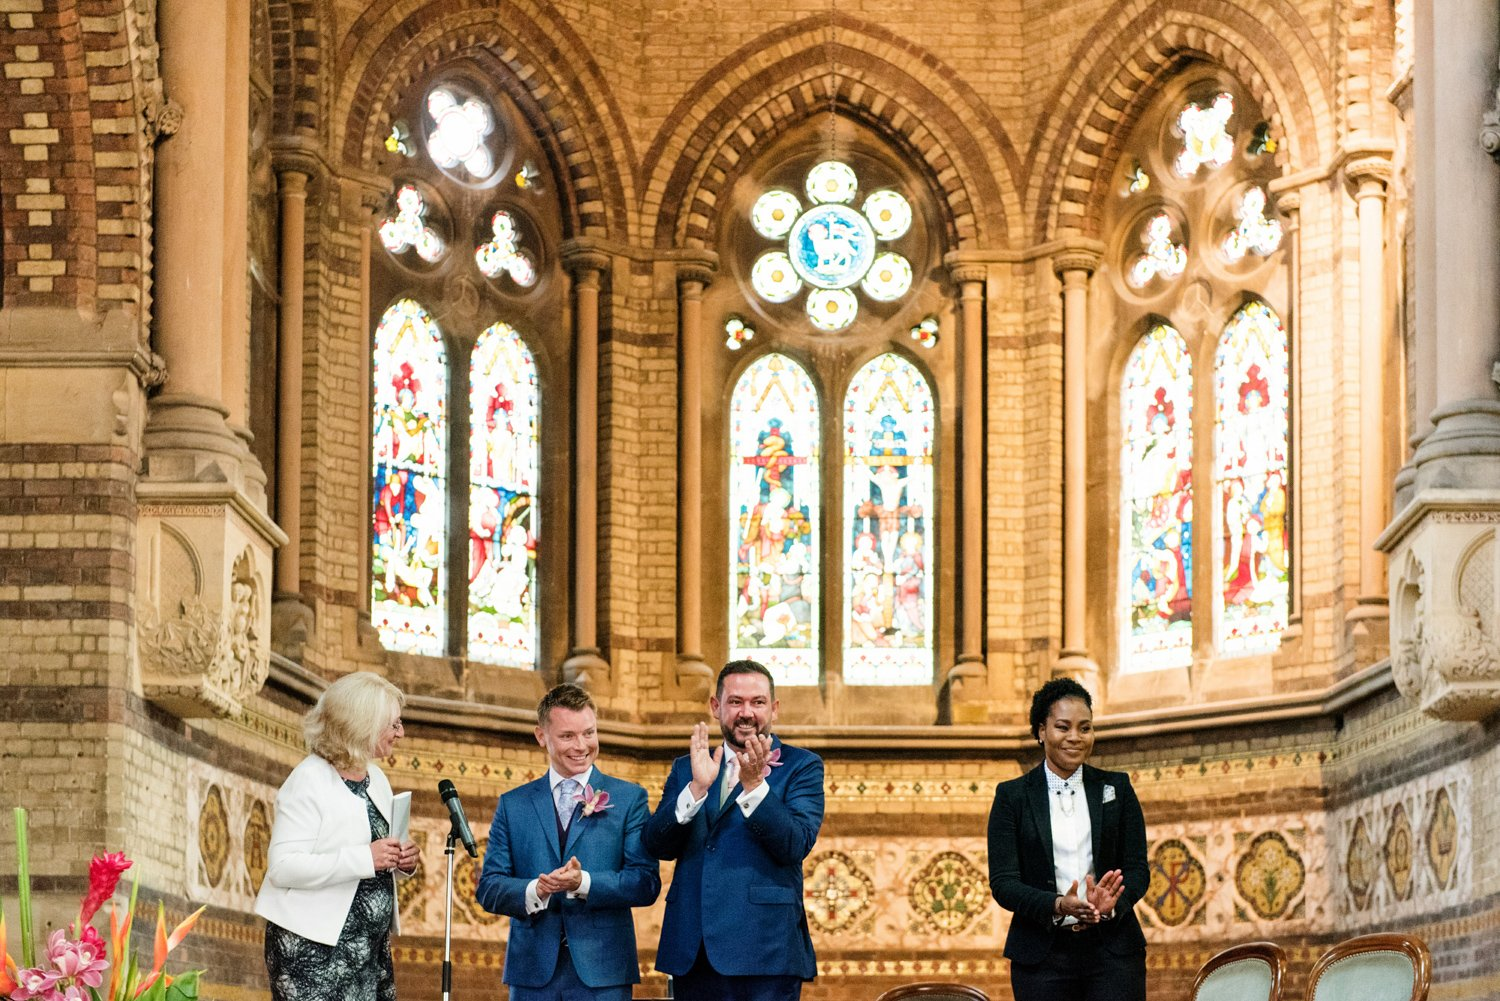 st-stephens-rosslyn-hill-wedding-photography-15